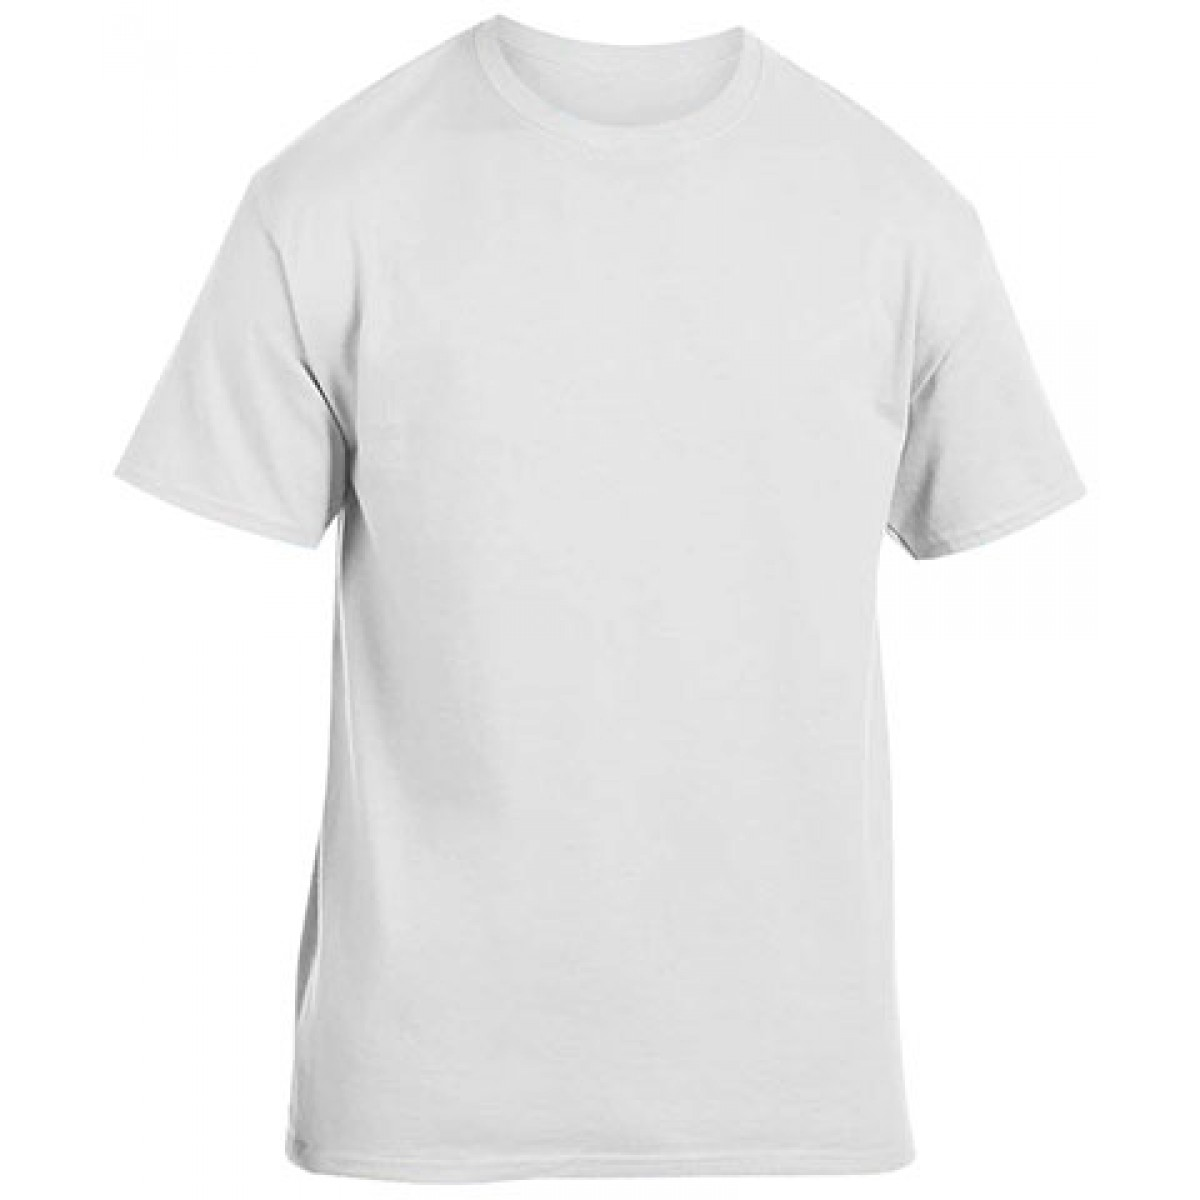 Cotton Short Sleeve T-Shirt-White-YL